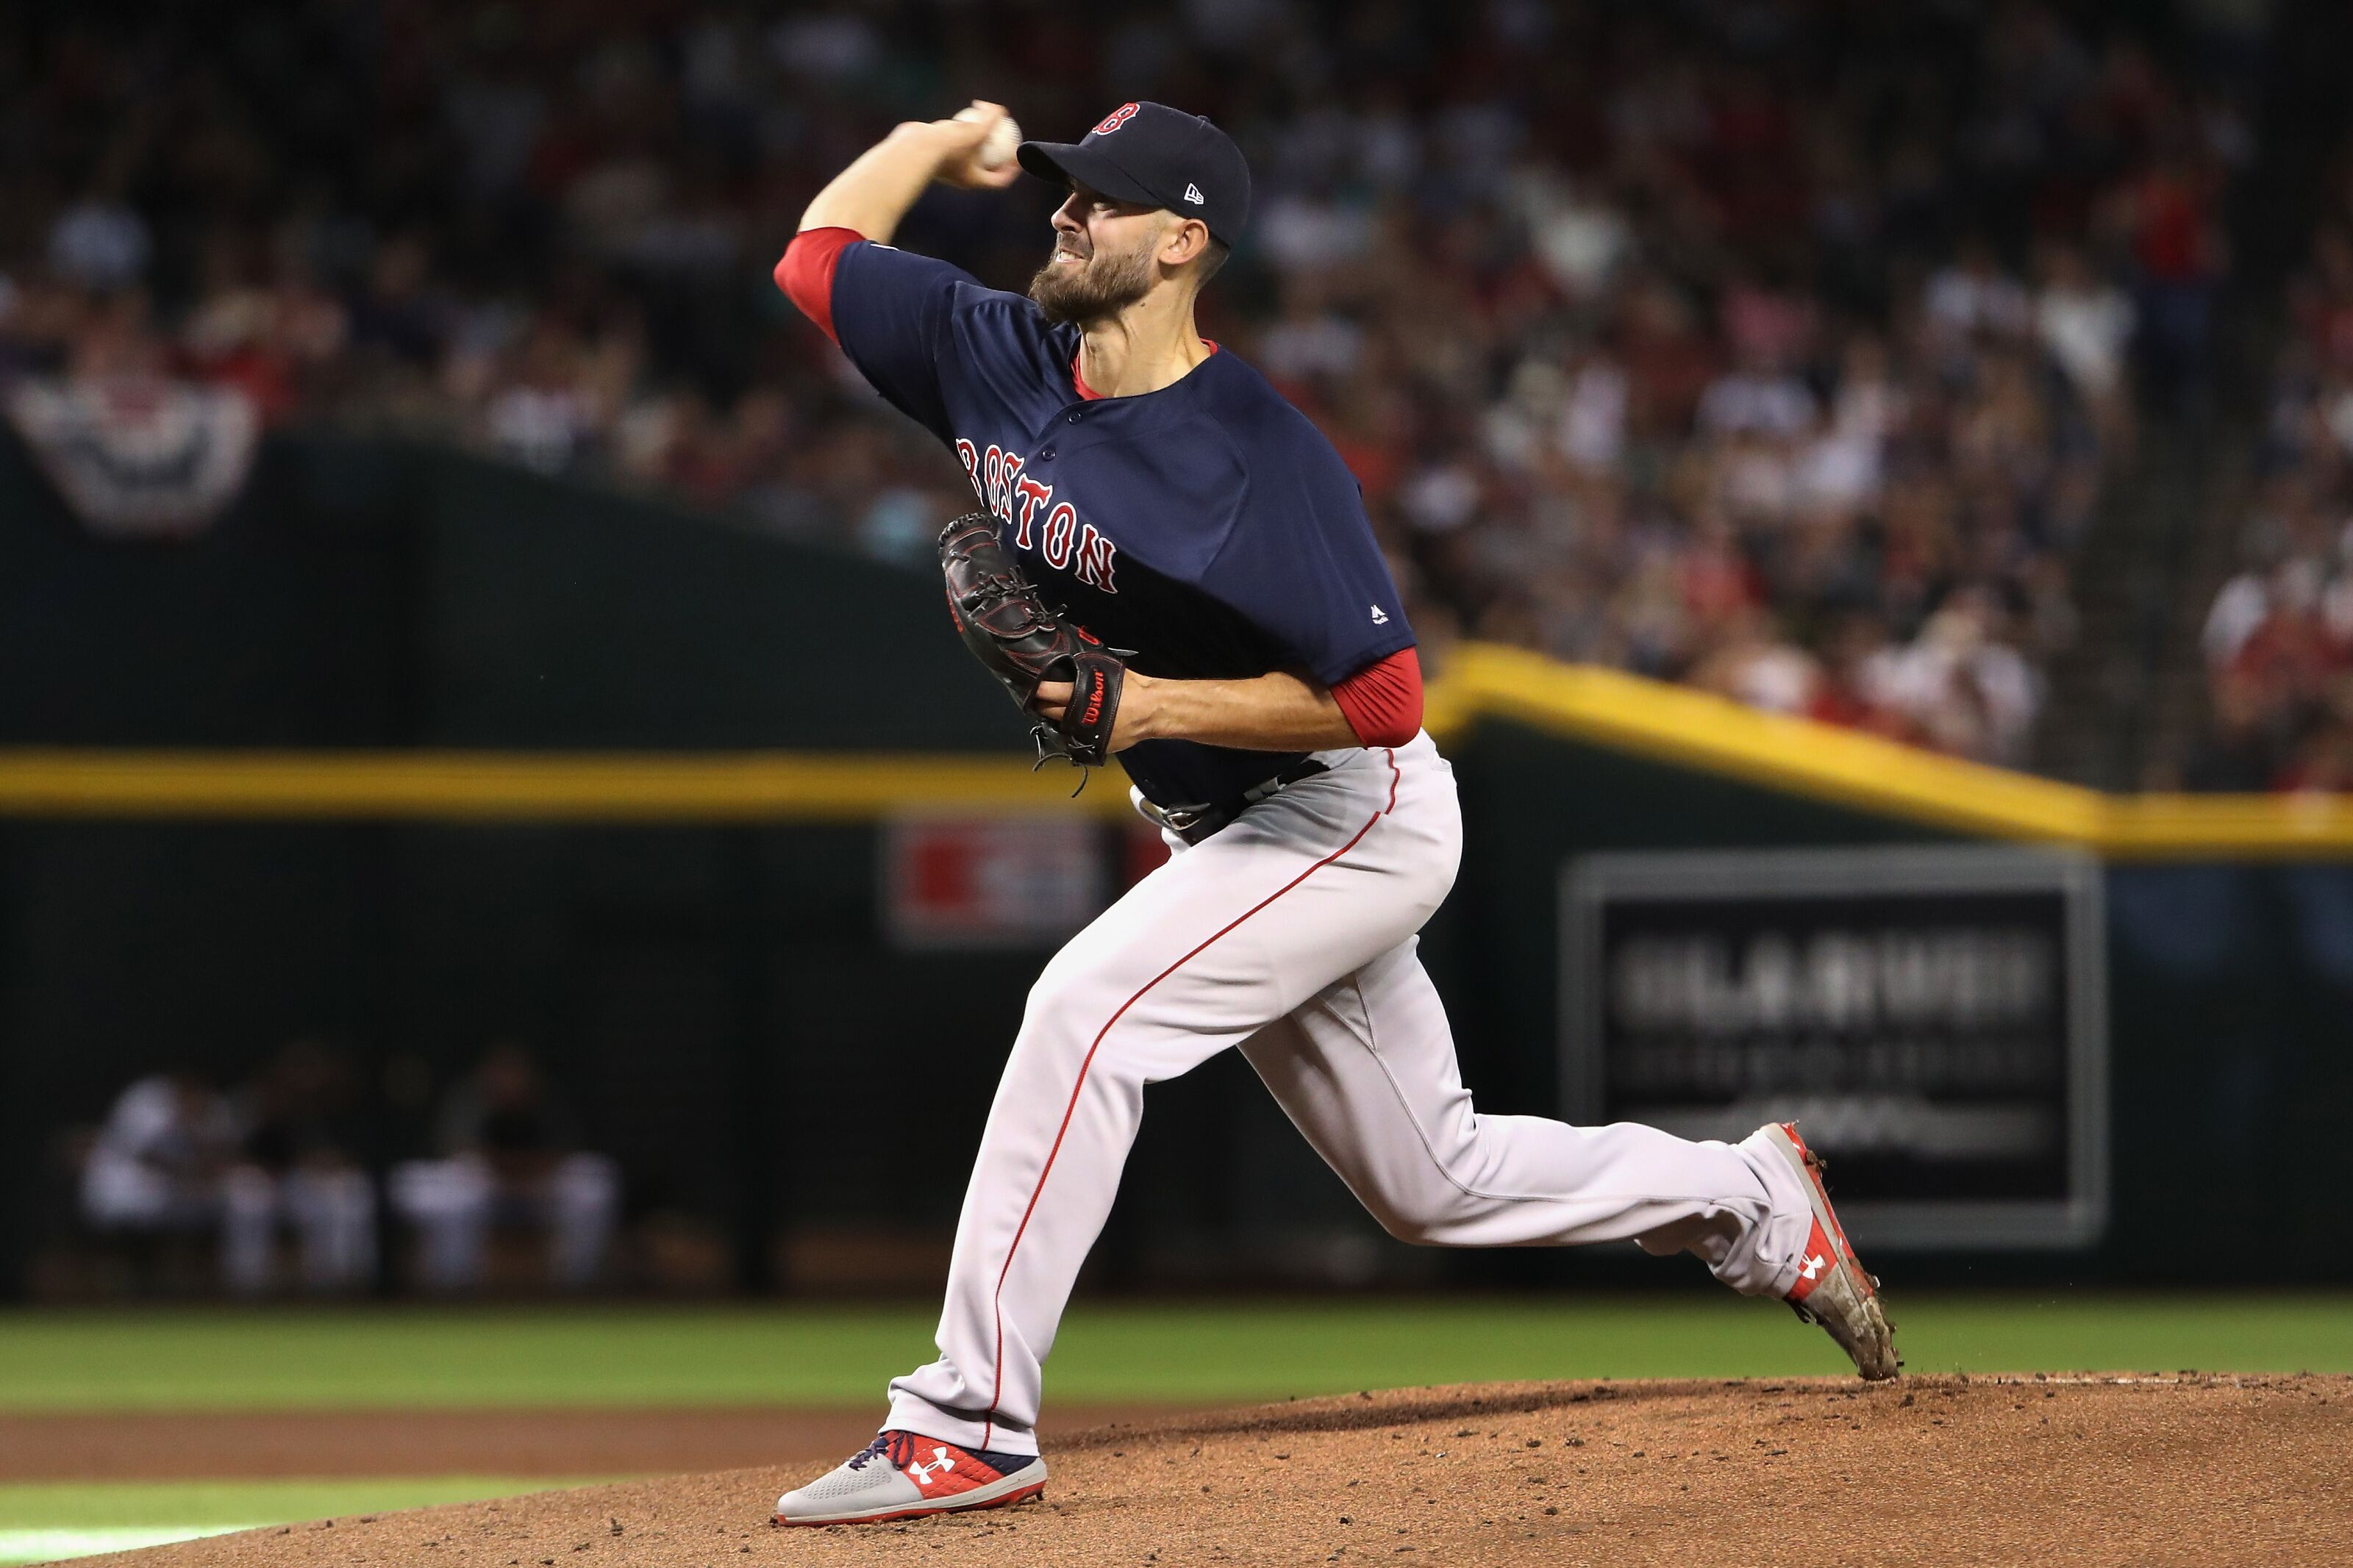 It's time for the Boston Red Sox to move on from Rick Porcello